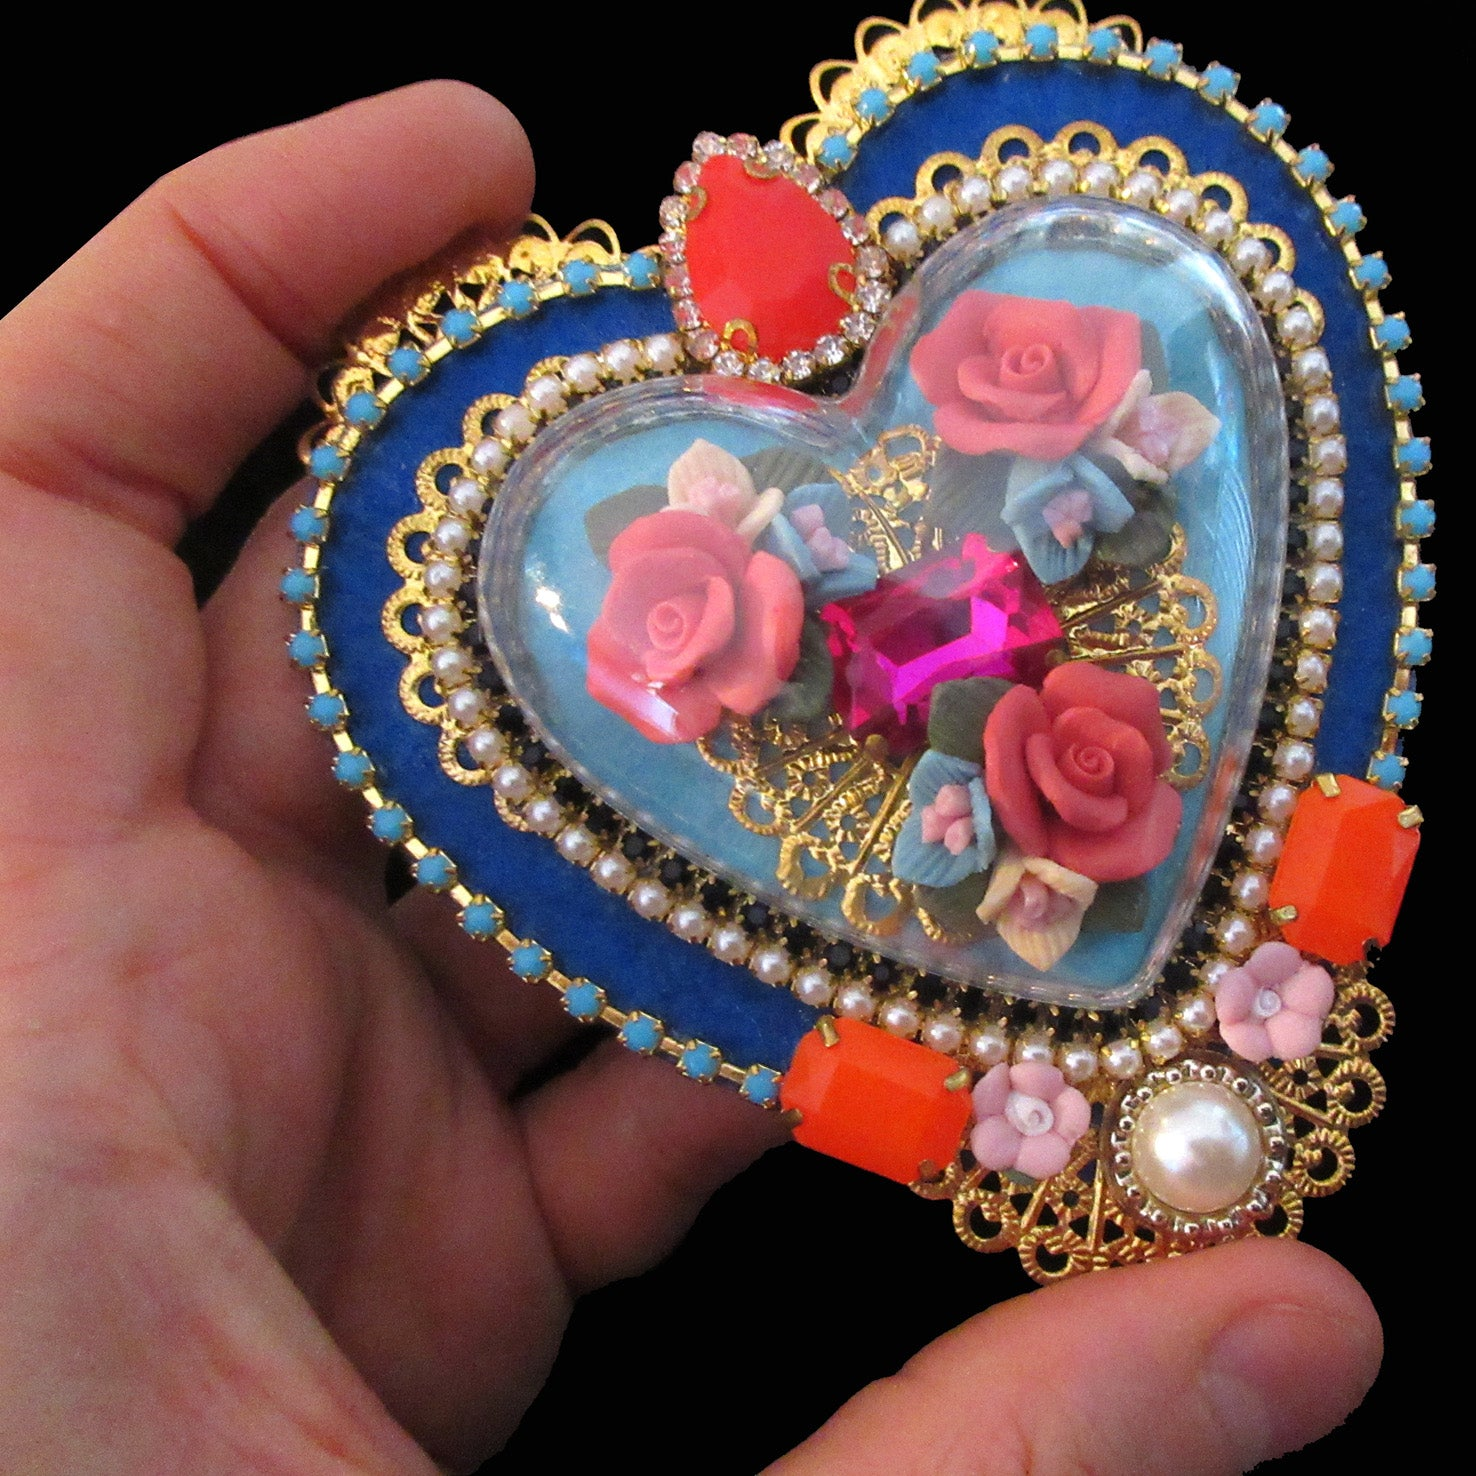 mouchkine jewelry unique pieces luxury heart brooch. handmade in france.